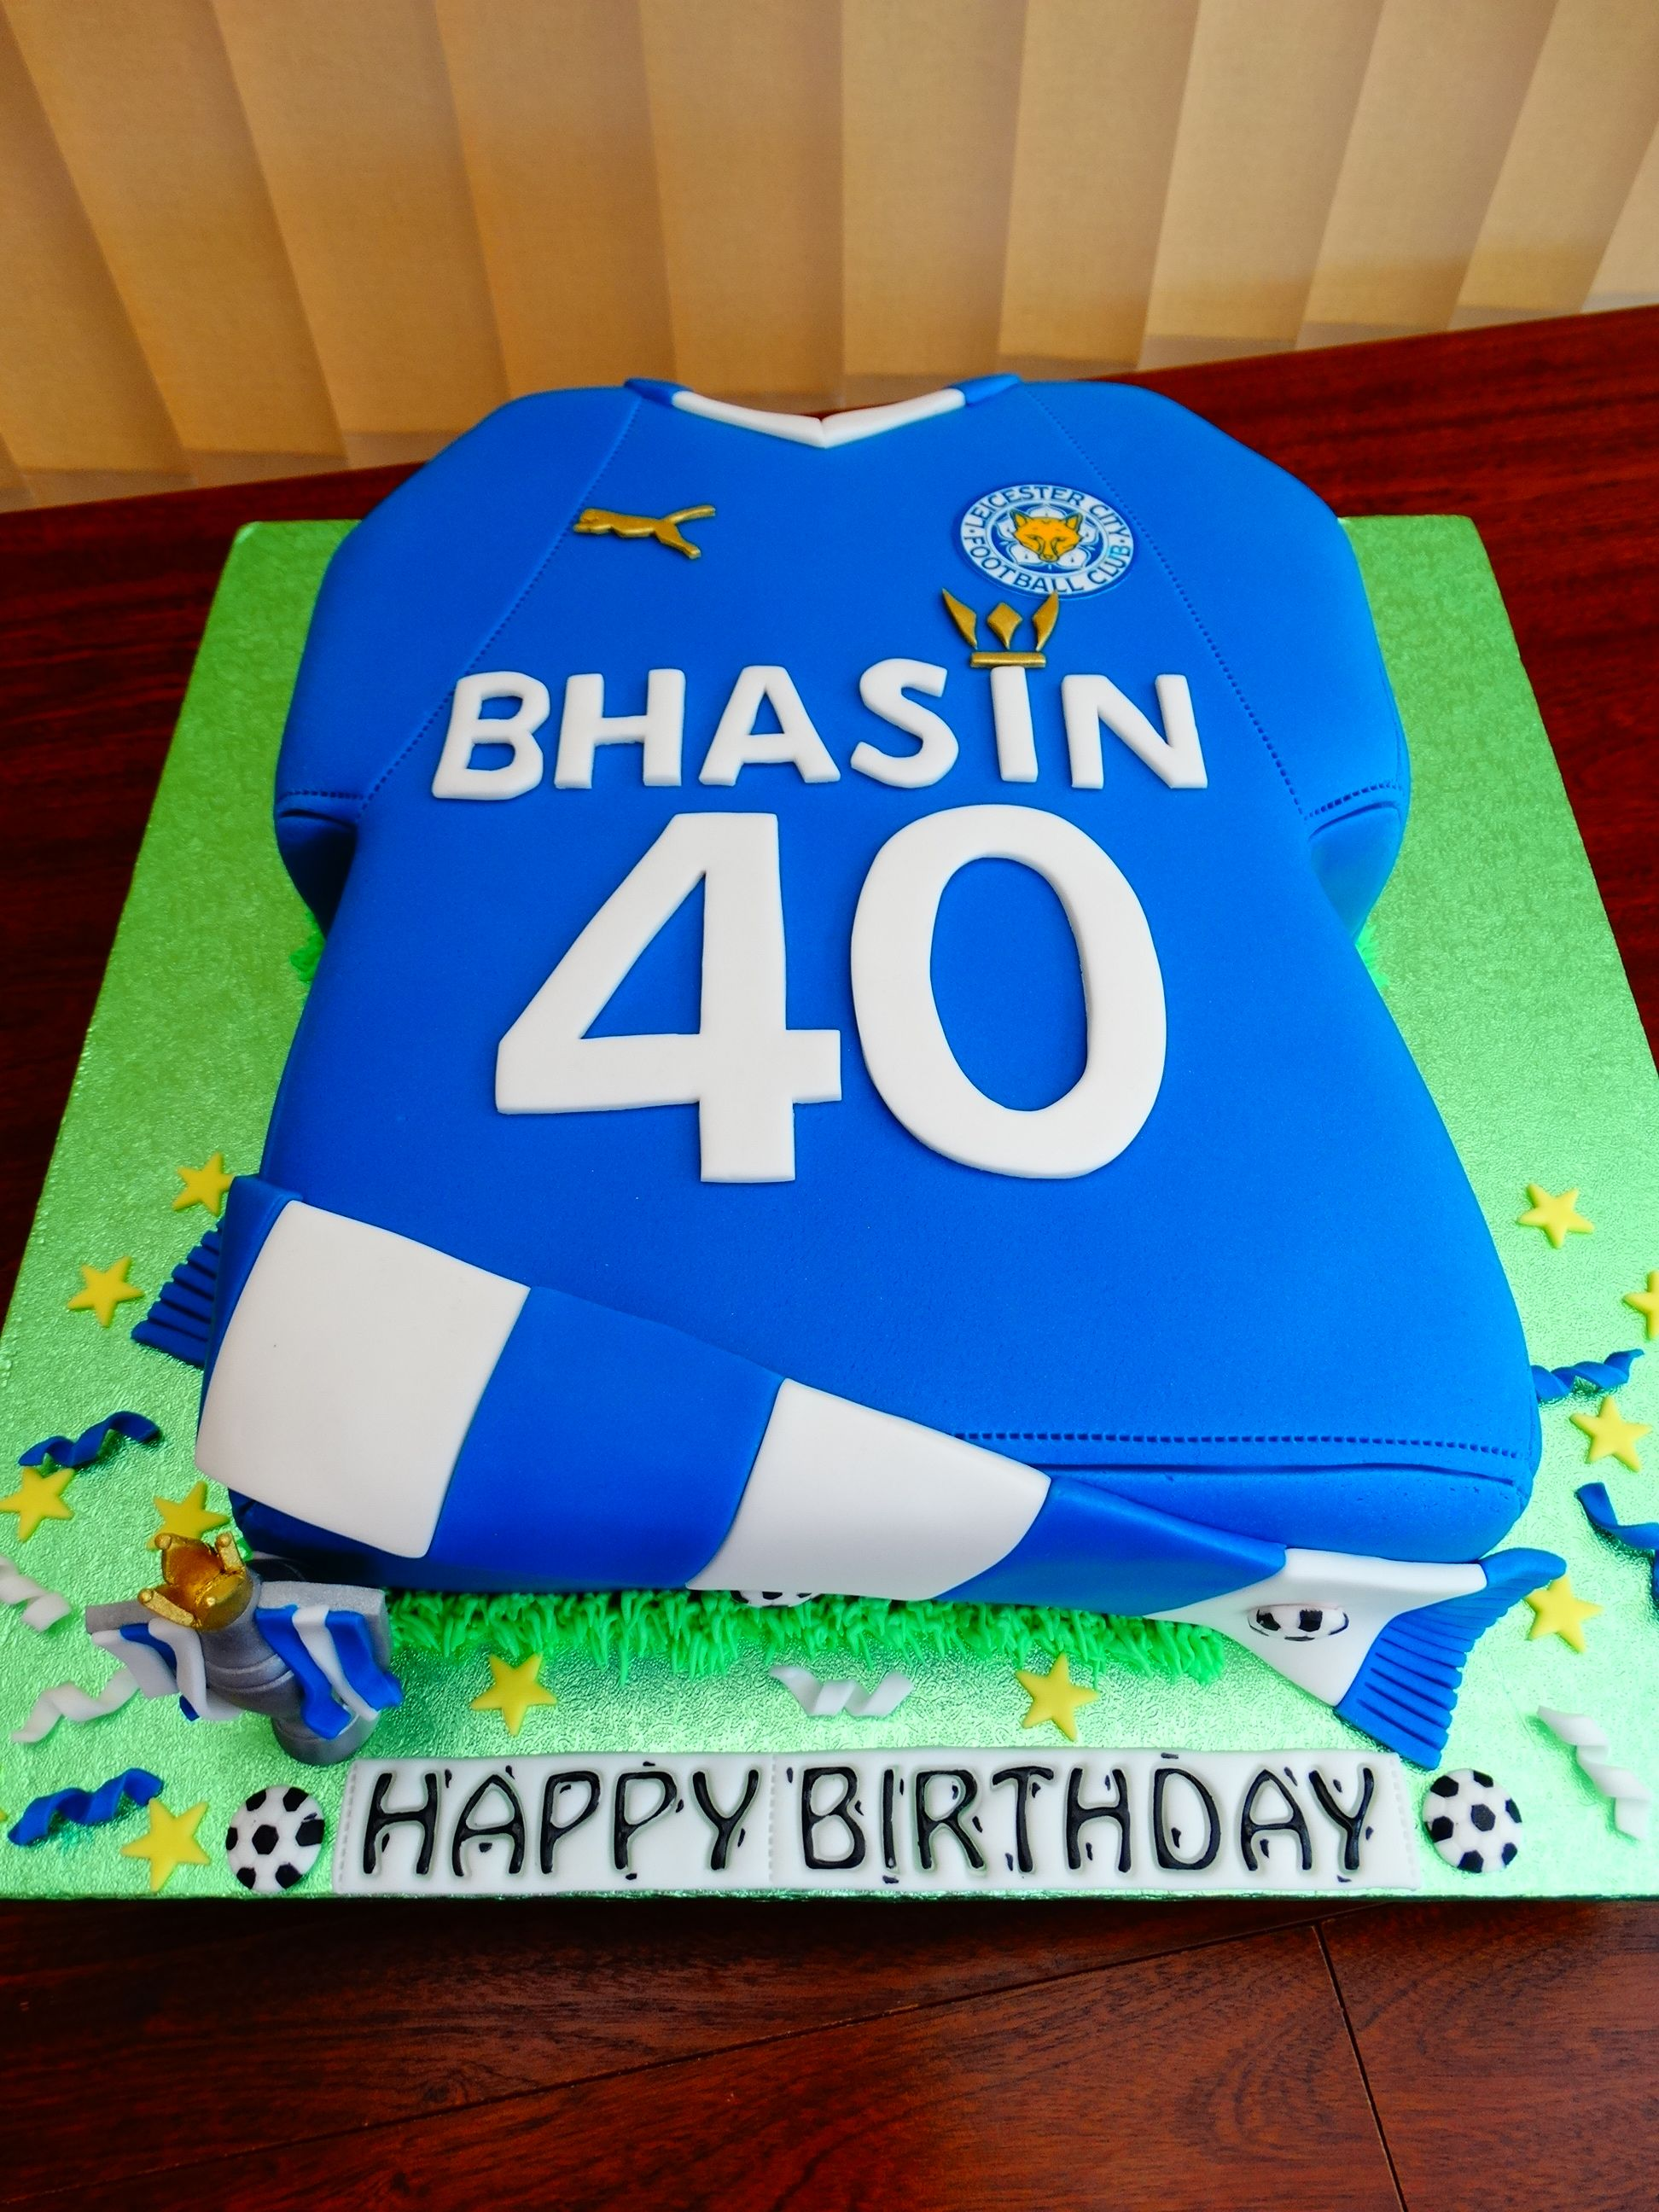 Leicester City Football Shirt Cake Xmcx With Images Leicester